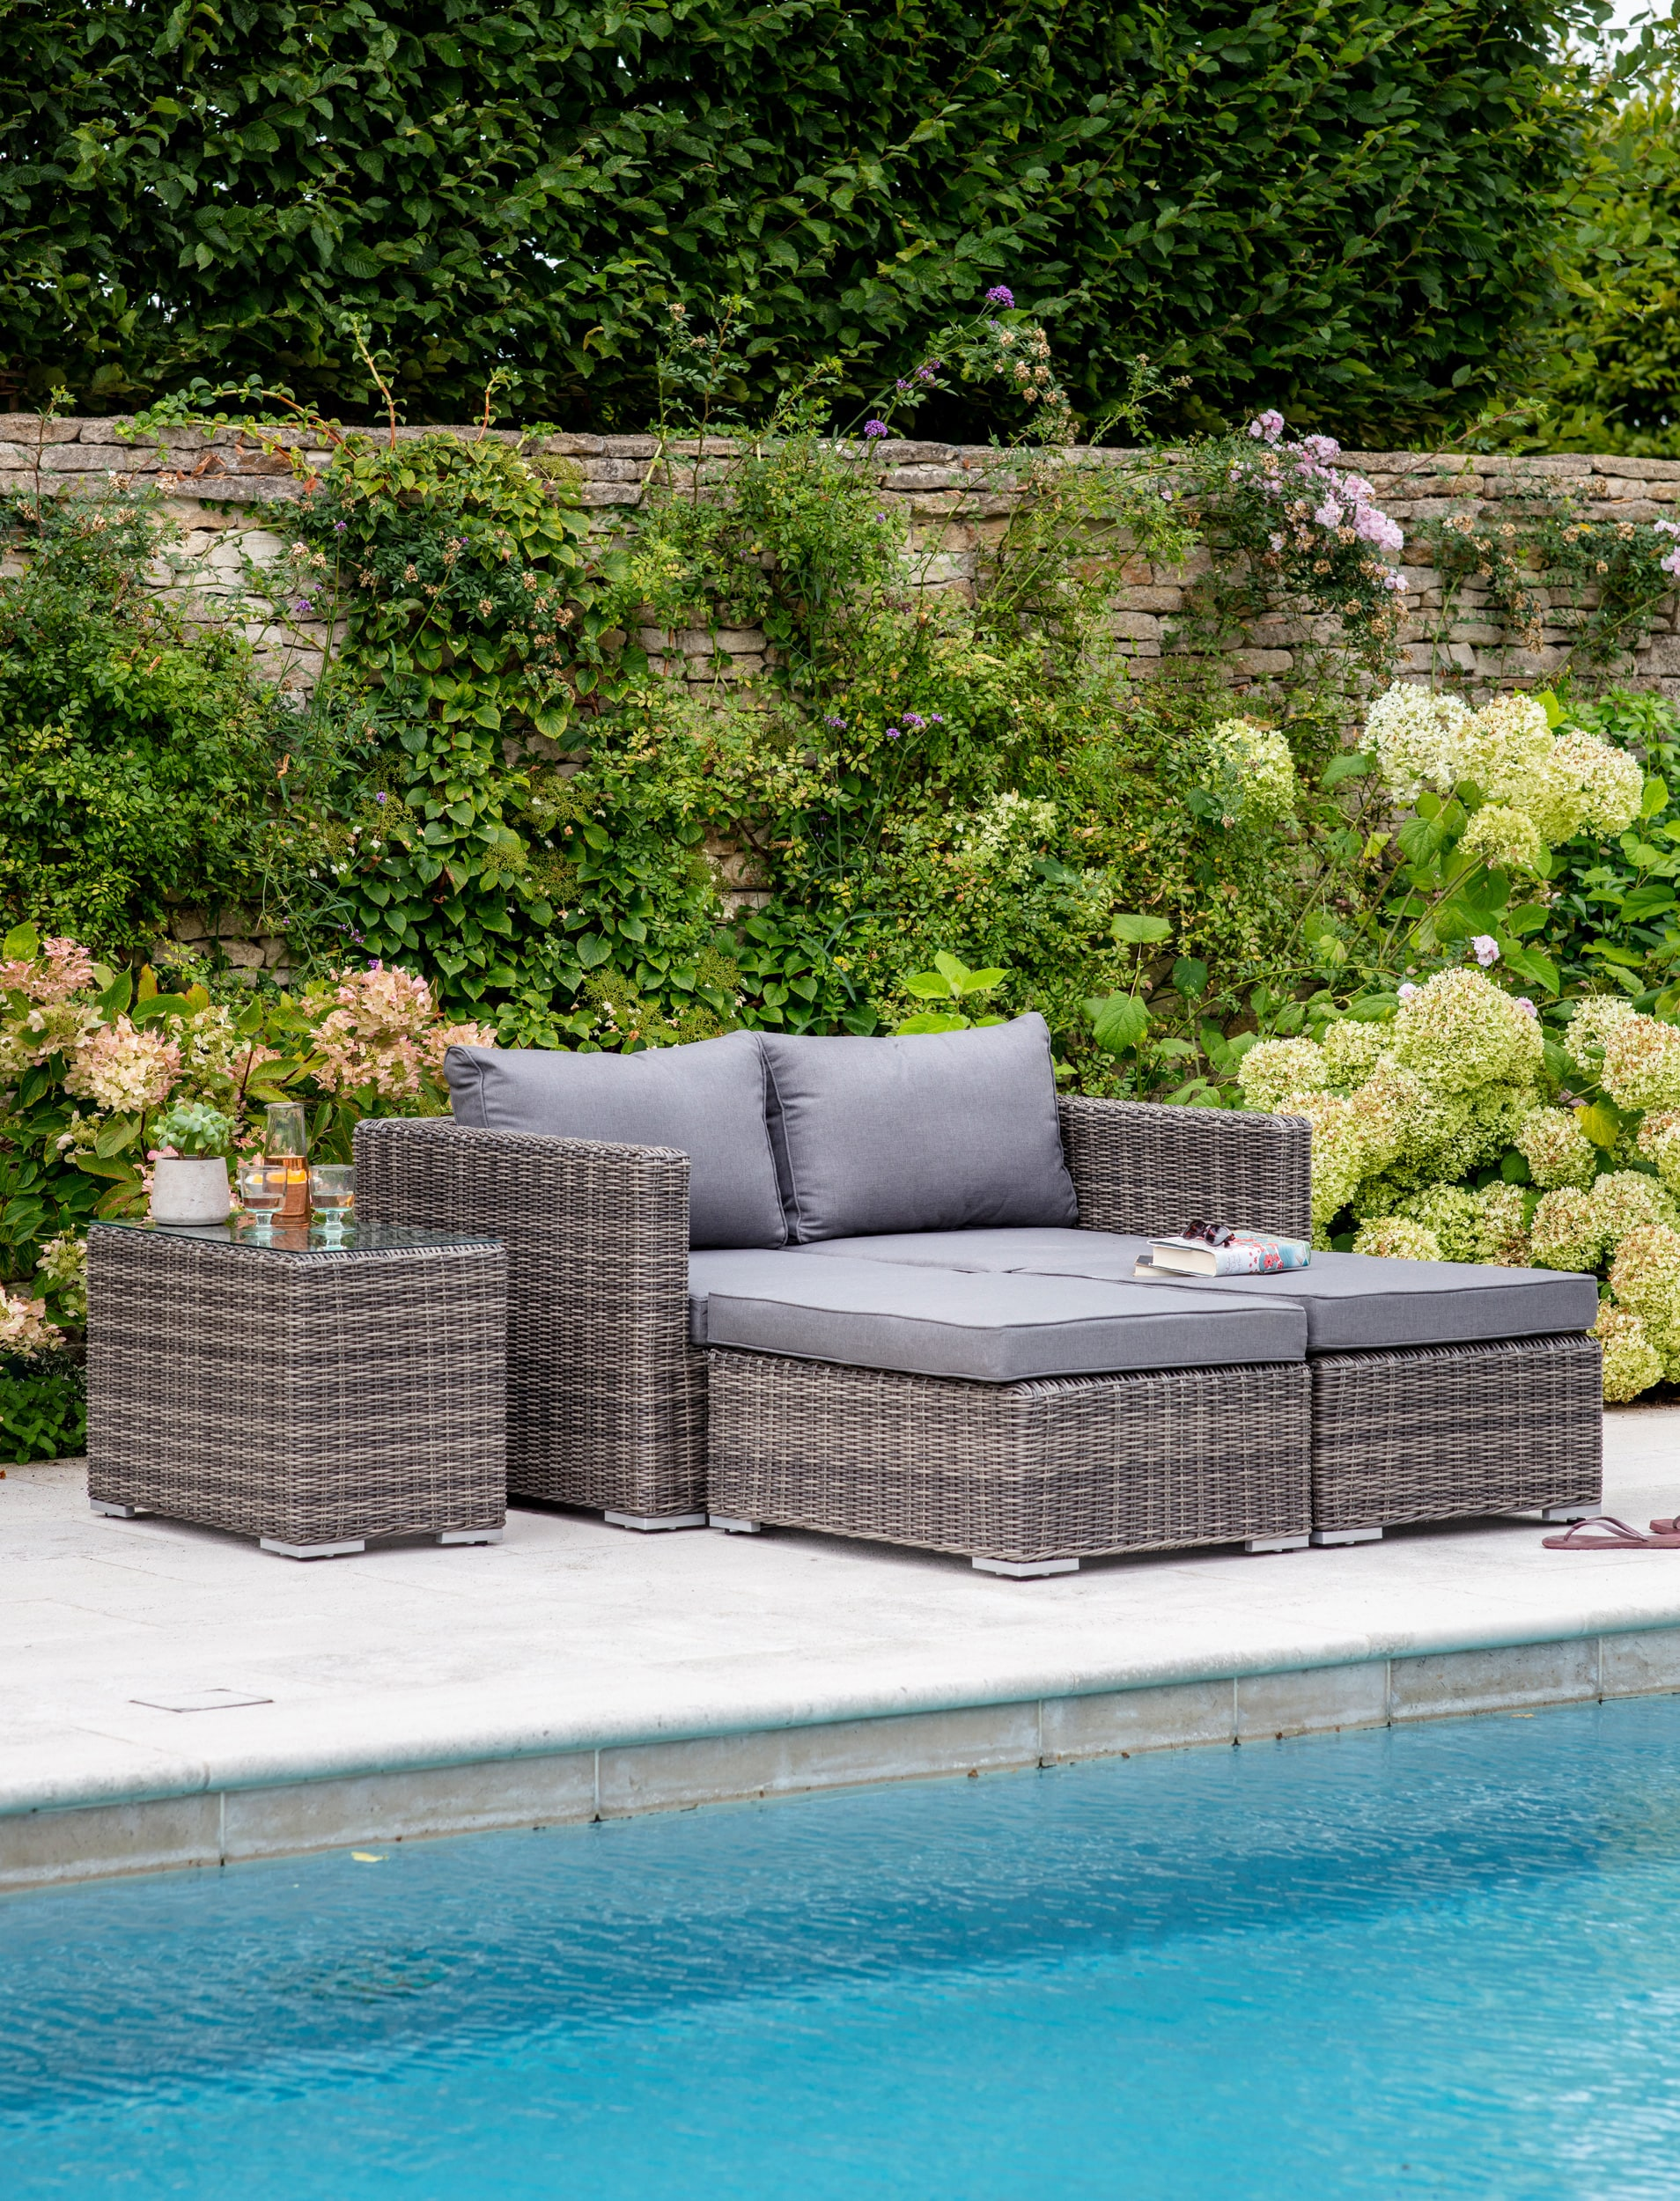 All-weather Rattan Selborne Modular Double Lounger Set | Garden Trading